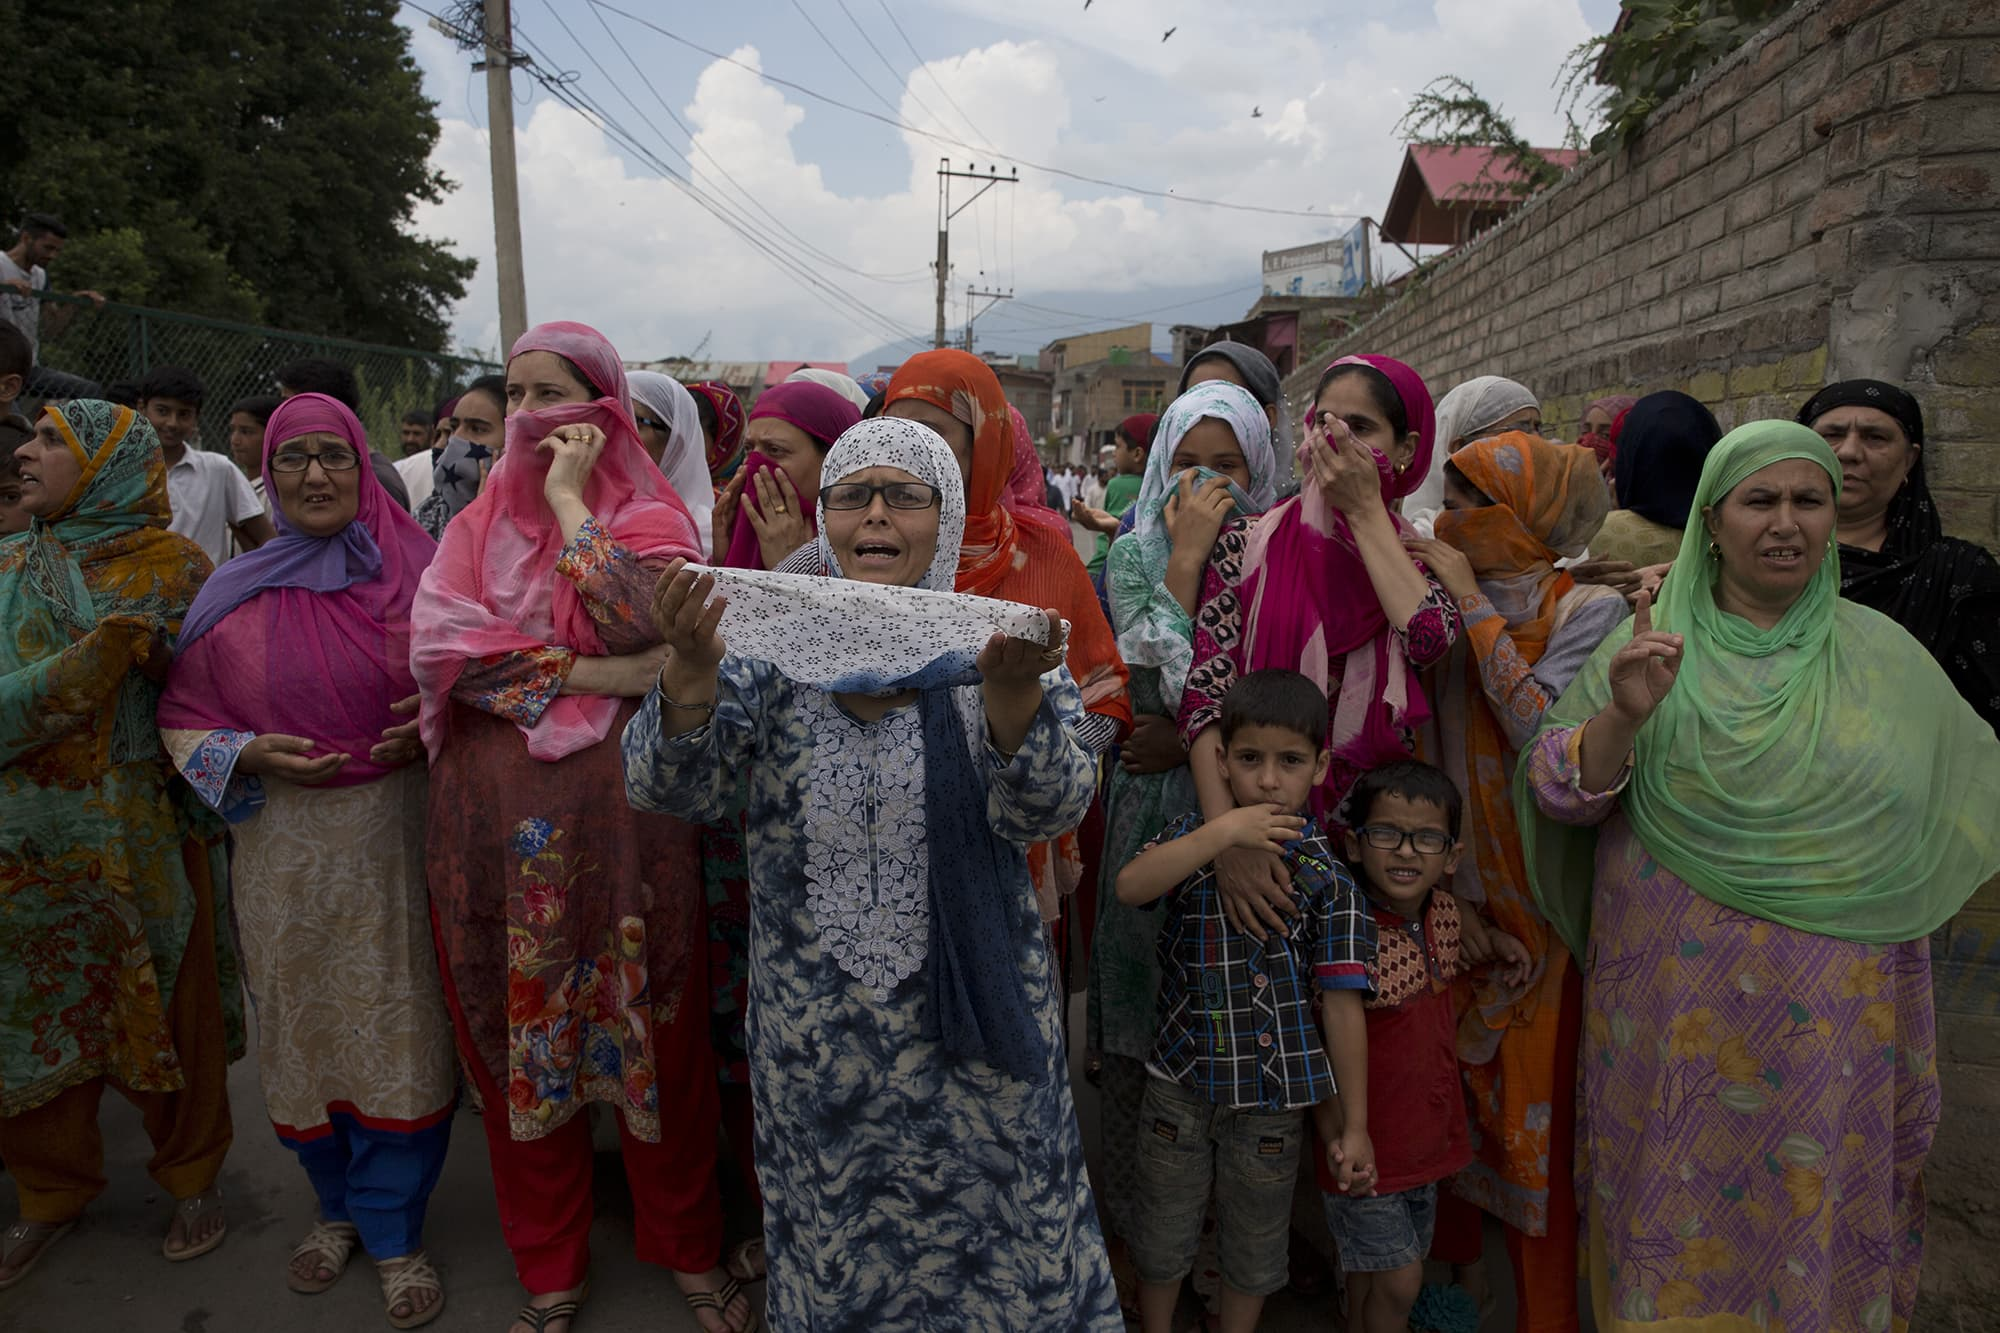 A Kashmiri woman prays as she watches a protest march in Srinagar. ─ AP